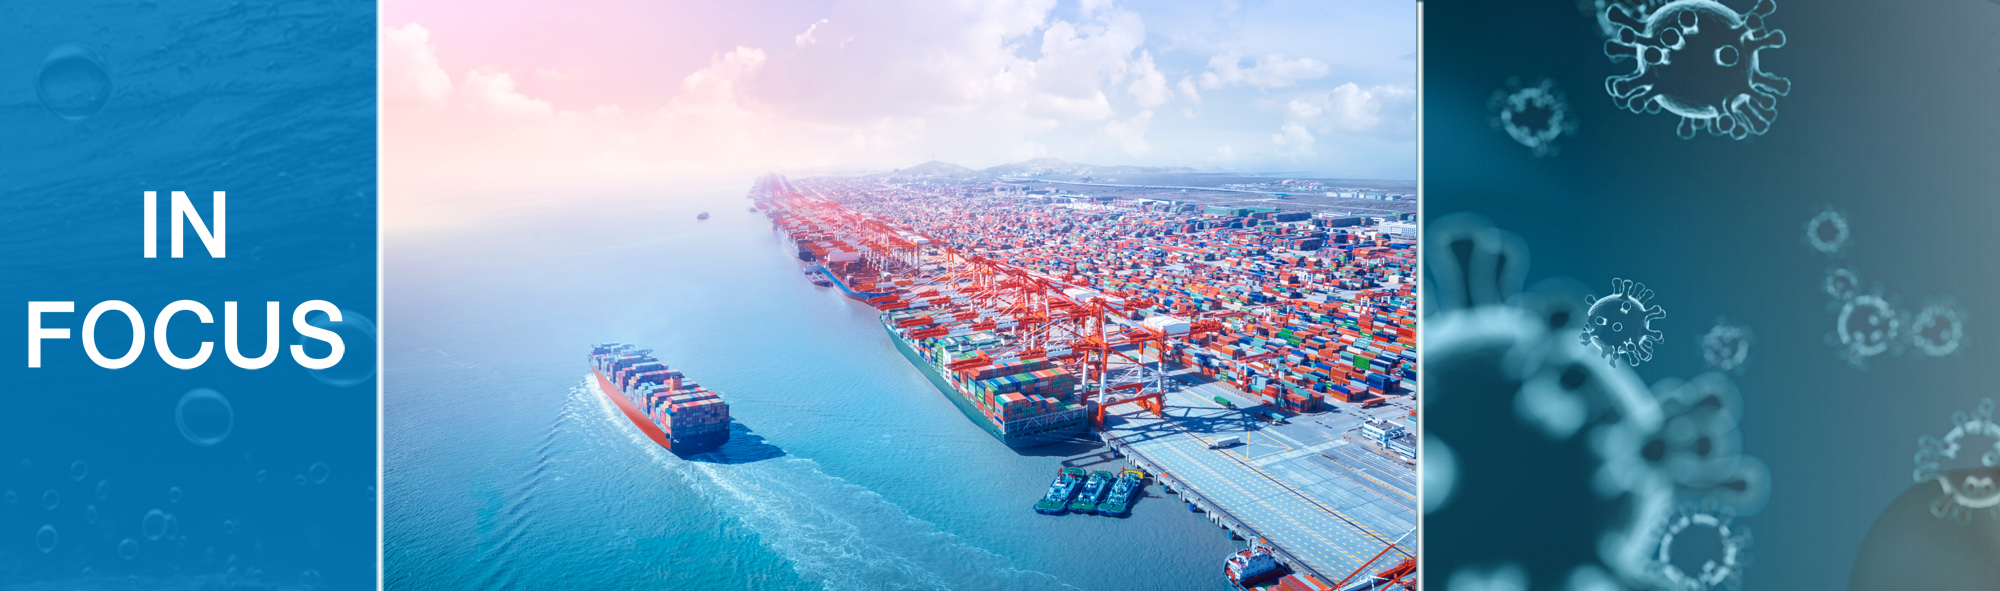 Useful resources for seafarers, ship owners and ship management companies, and other members of the maritime industry in the wake of the COVID-19 outbreak